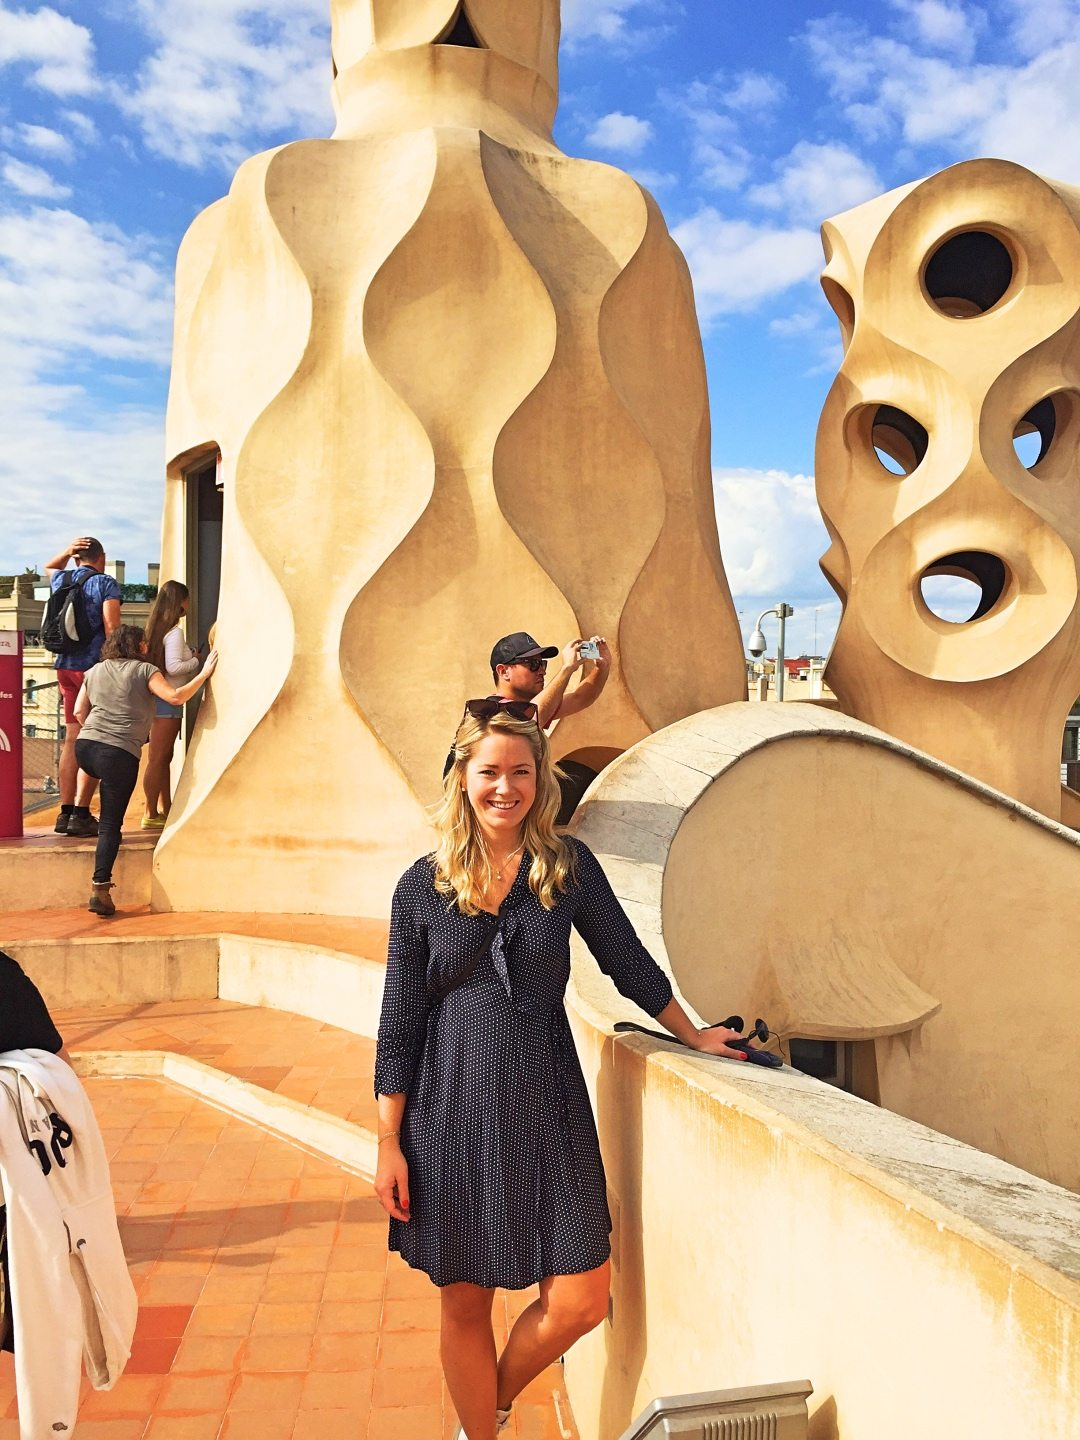 Another picture of me with the sculptures of Casa Milá